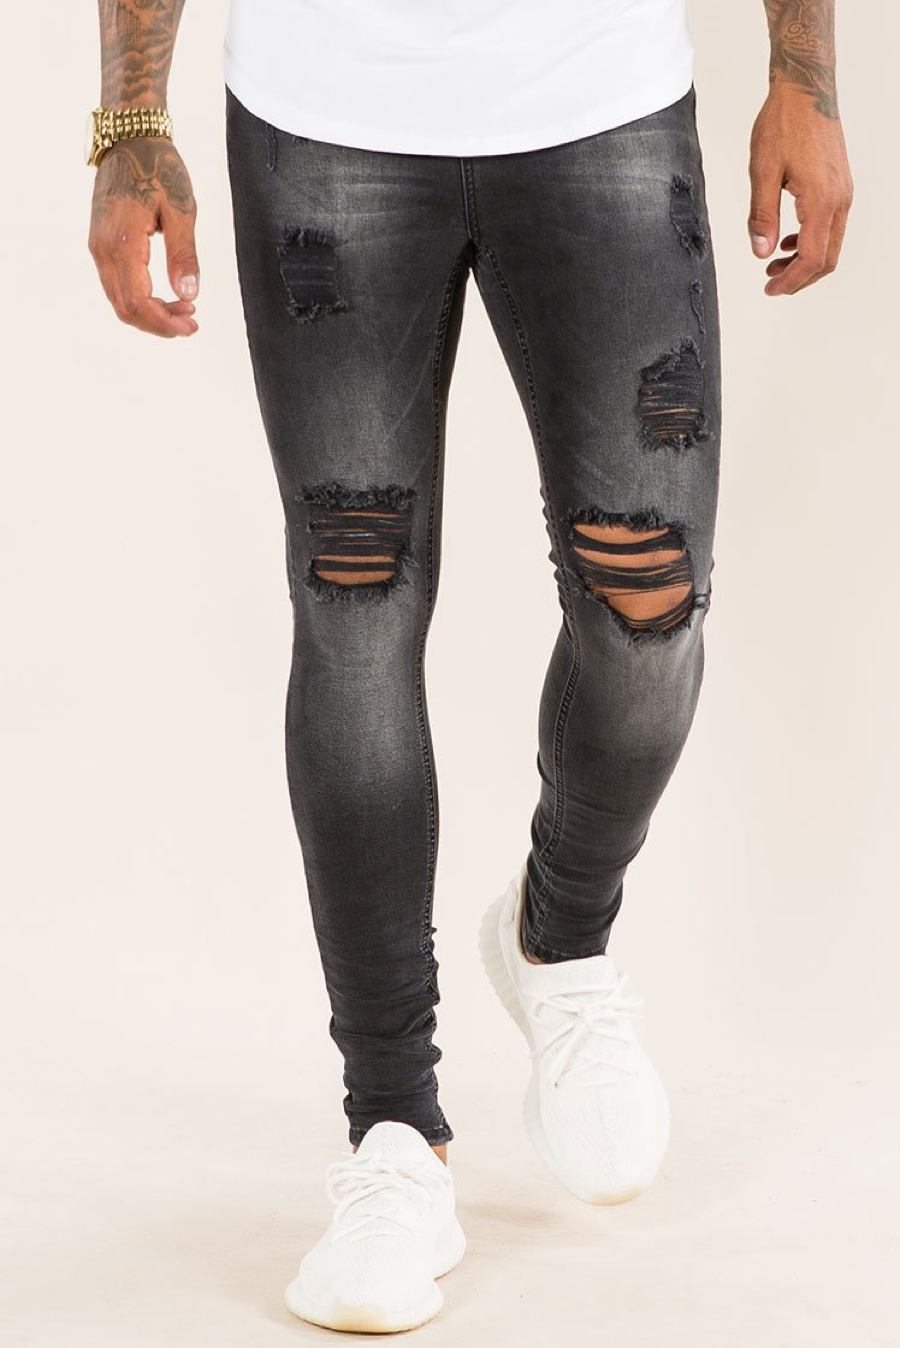 Emulate Marquee Ripped Skinny Jeans - Black Wash